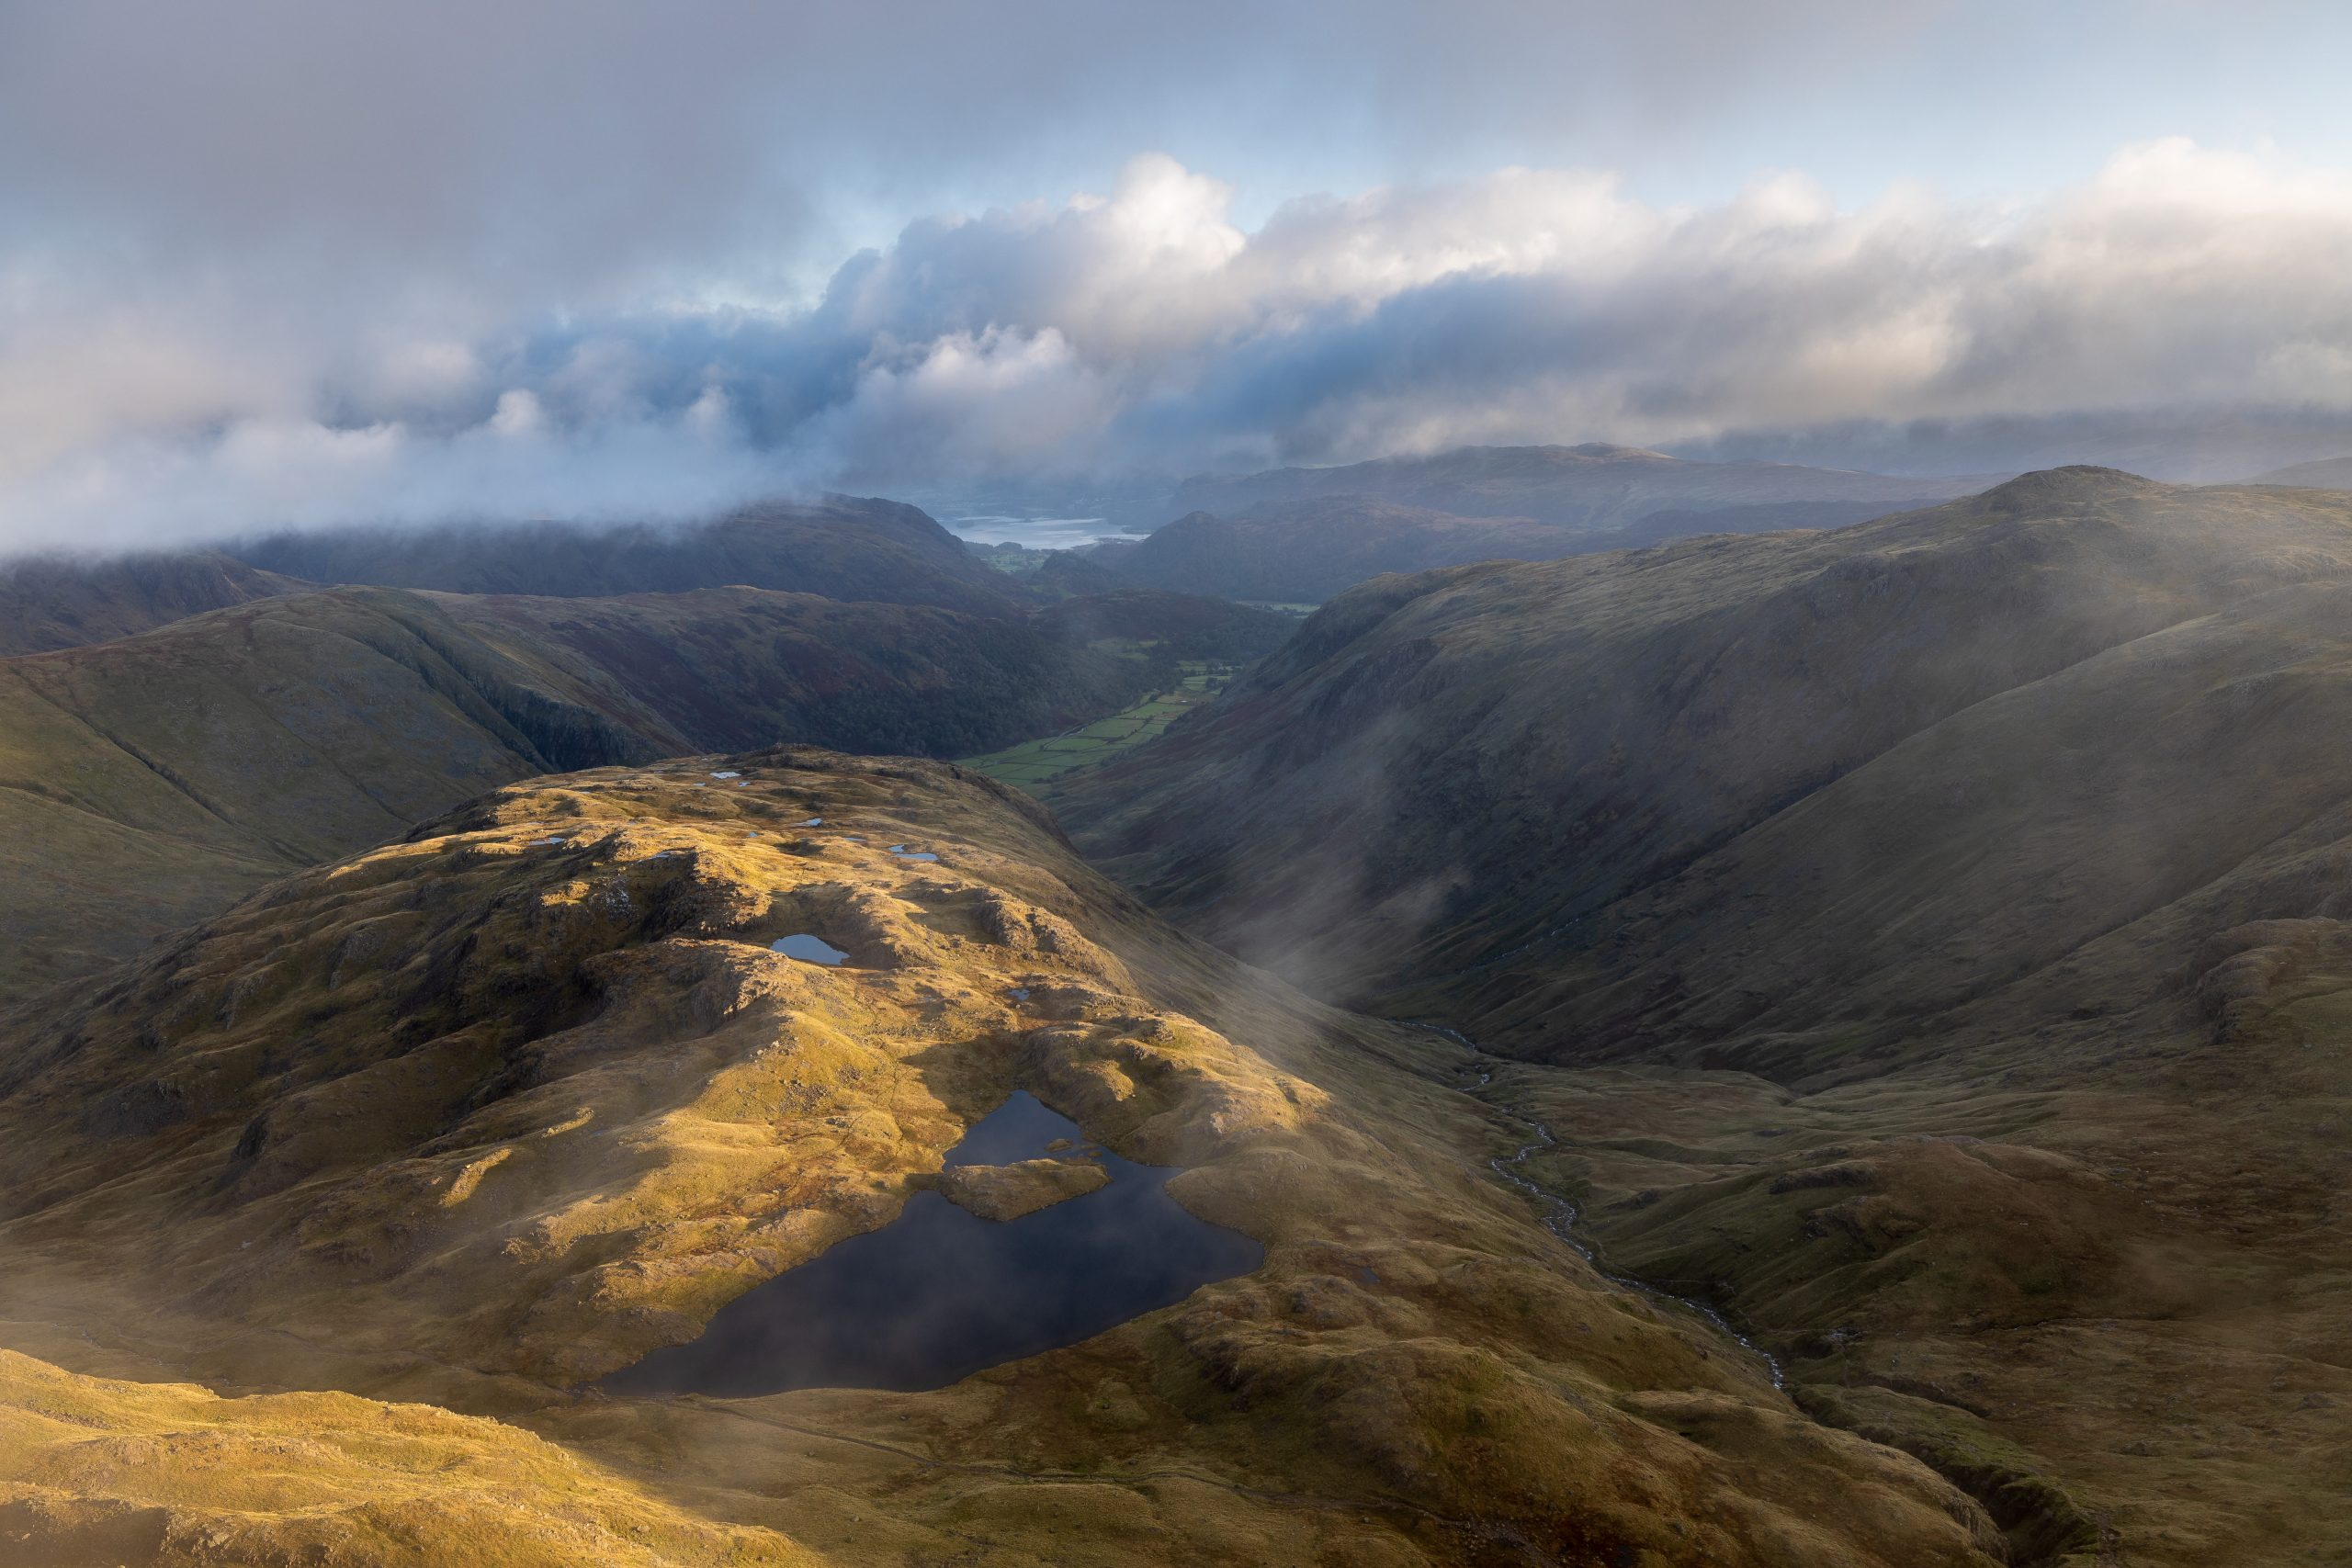 An early morning view from Great End in the Lake District looking down at Sprinkling Tarn and Borrowdale to Derwent Water